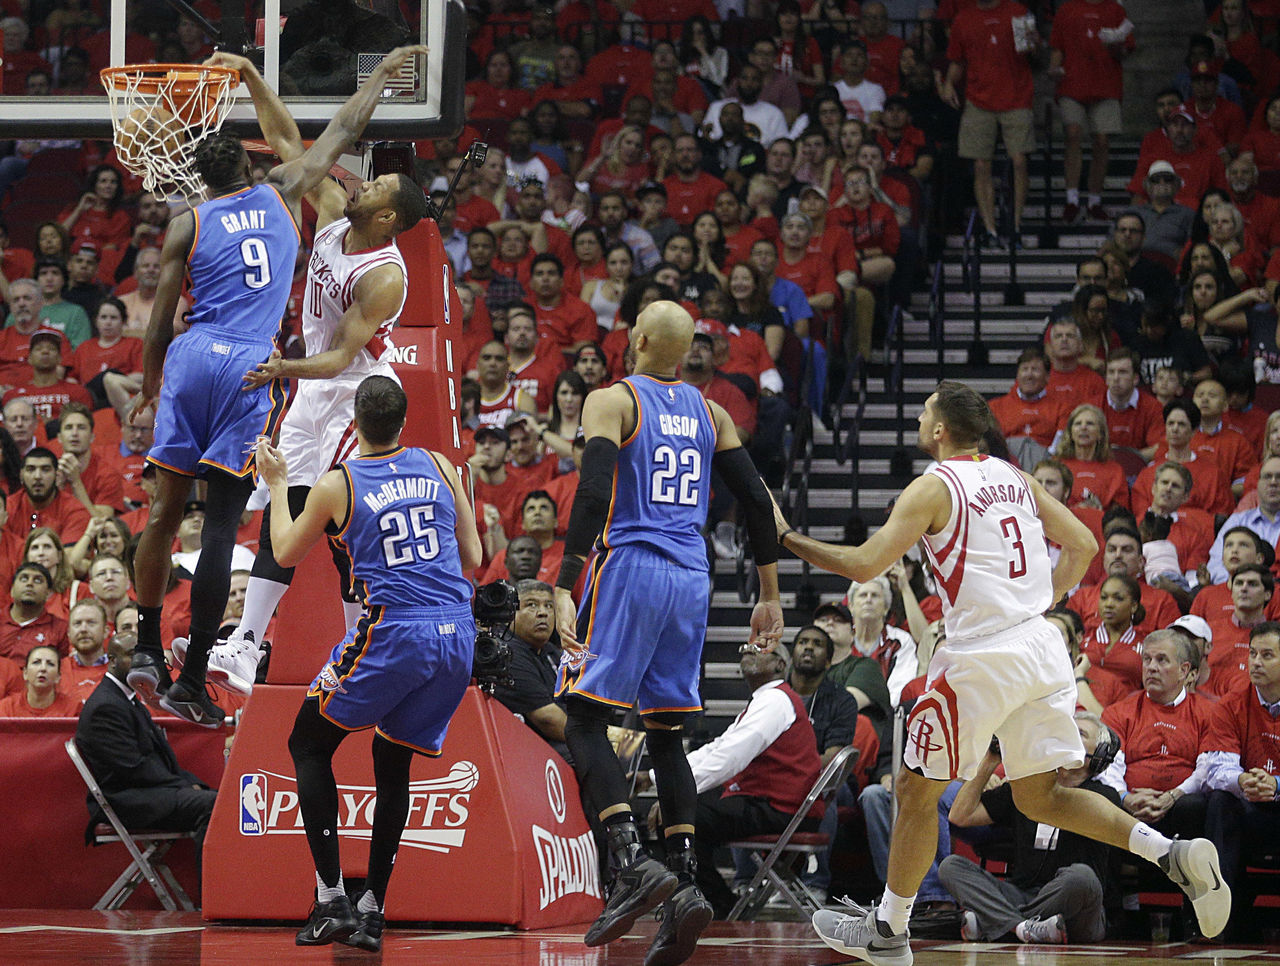 Cropped 2017 04 26t014002z 199119415 nocid rtrmadp 3 nba playoffs oklahoma city thunder at houston rockets